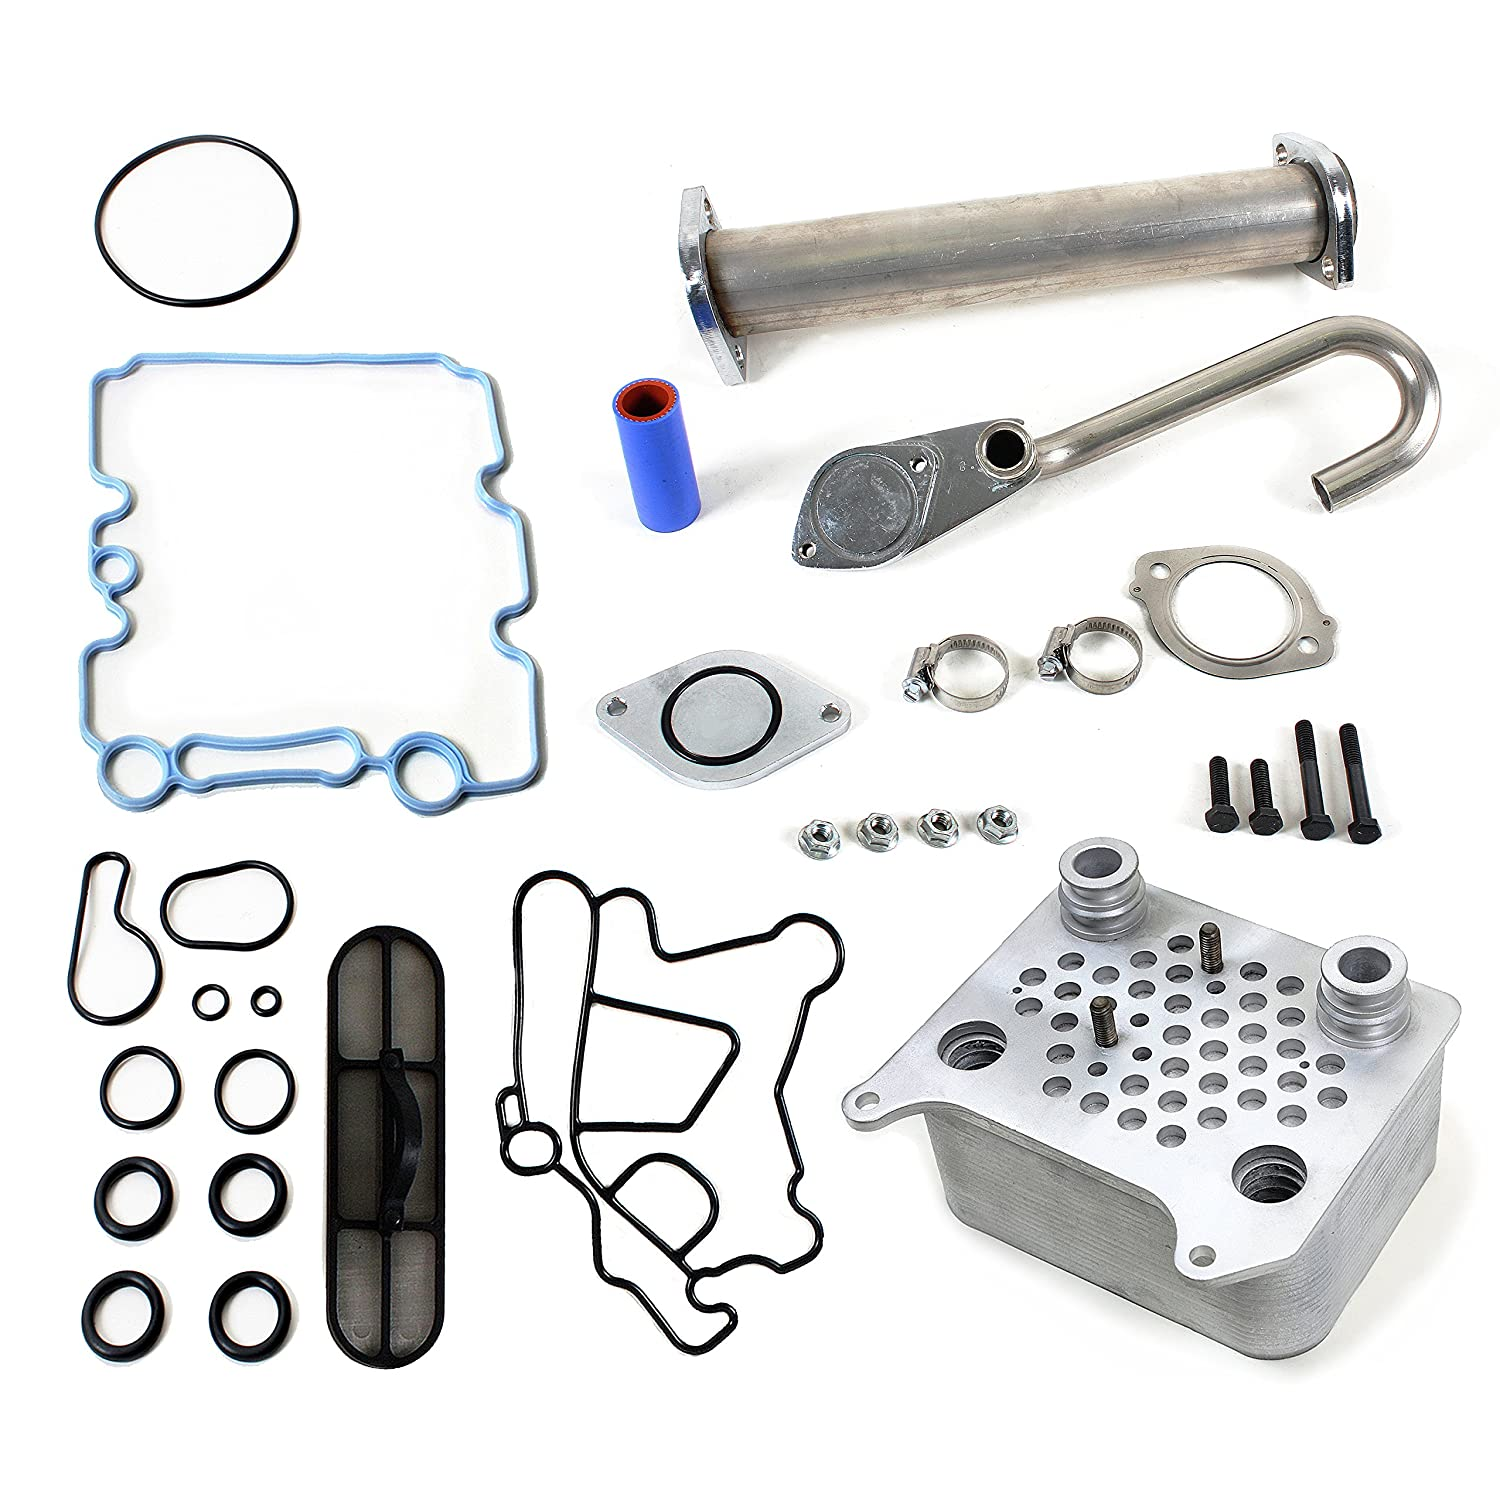 CNS EGR-DK-OCK4 EGR Delete Kit & Engine Oil Cooler Kit for Ford E-Series / F-Series / EXCURSION 6.0L (363cid) OHV V8 POWER STROKE DIESEL TURBO 03-10 by CNS EngineParts